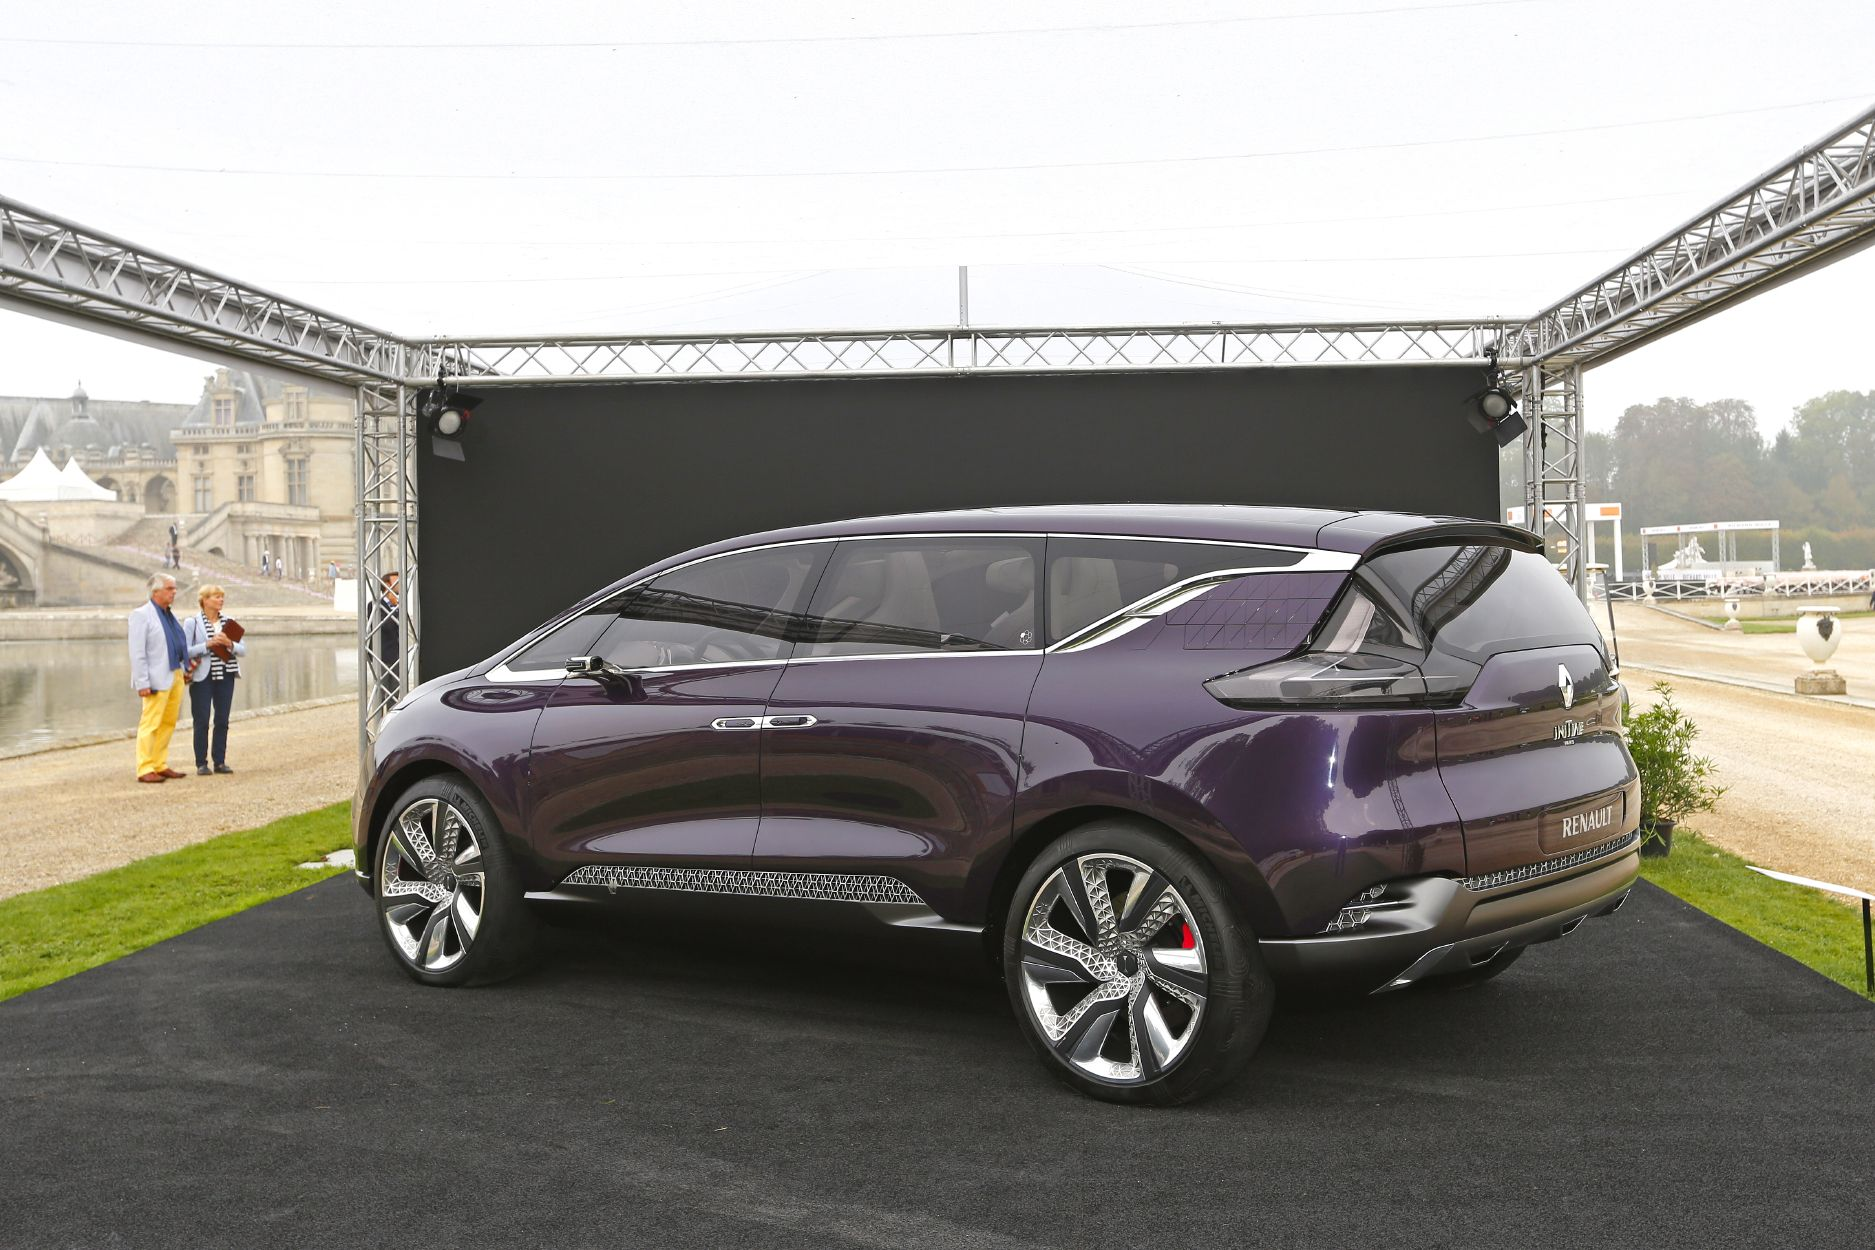 The Initialeparis Concept Car Has Been Exhibited Recently At The